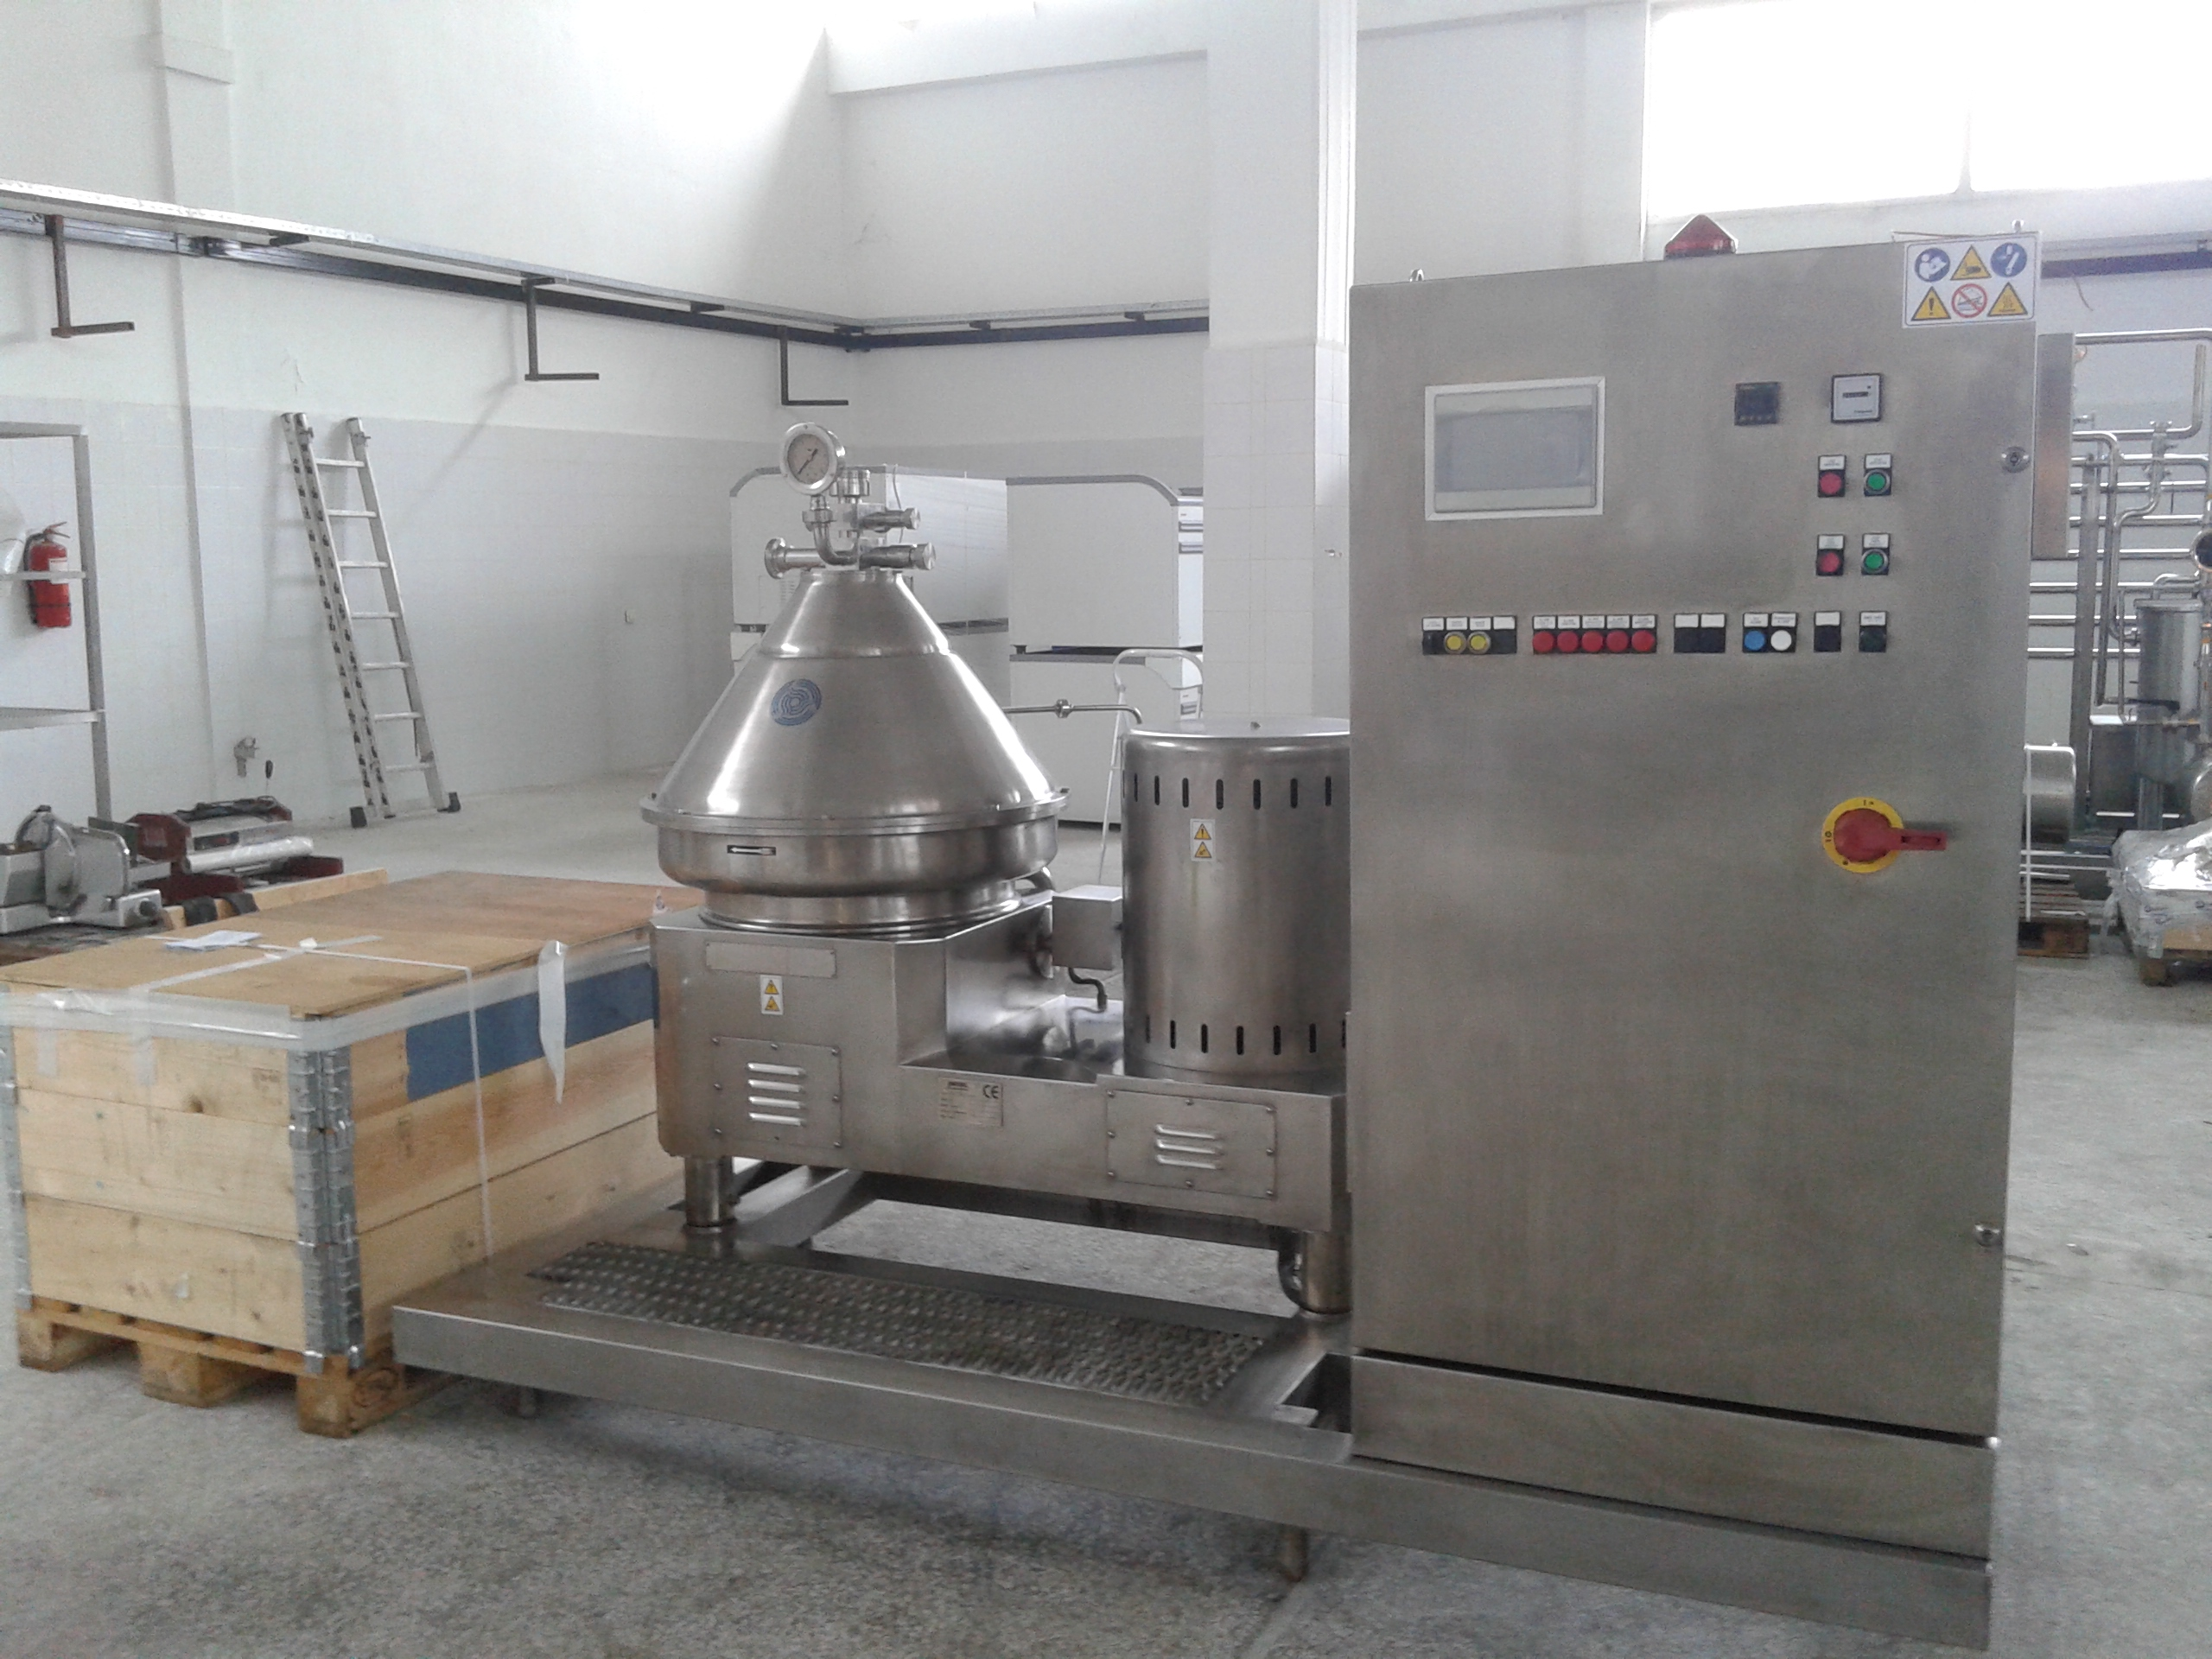 Lot 4 - 2006 Andritz Frautech Seperator, Model CA71T, 8000-10.000 LT/Hr Capacity, Self Cleaning, Recently R